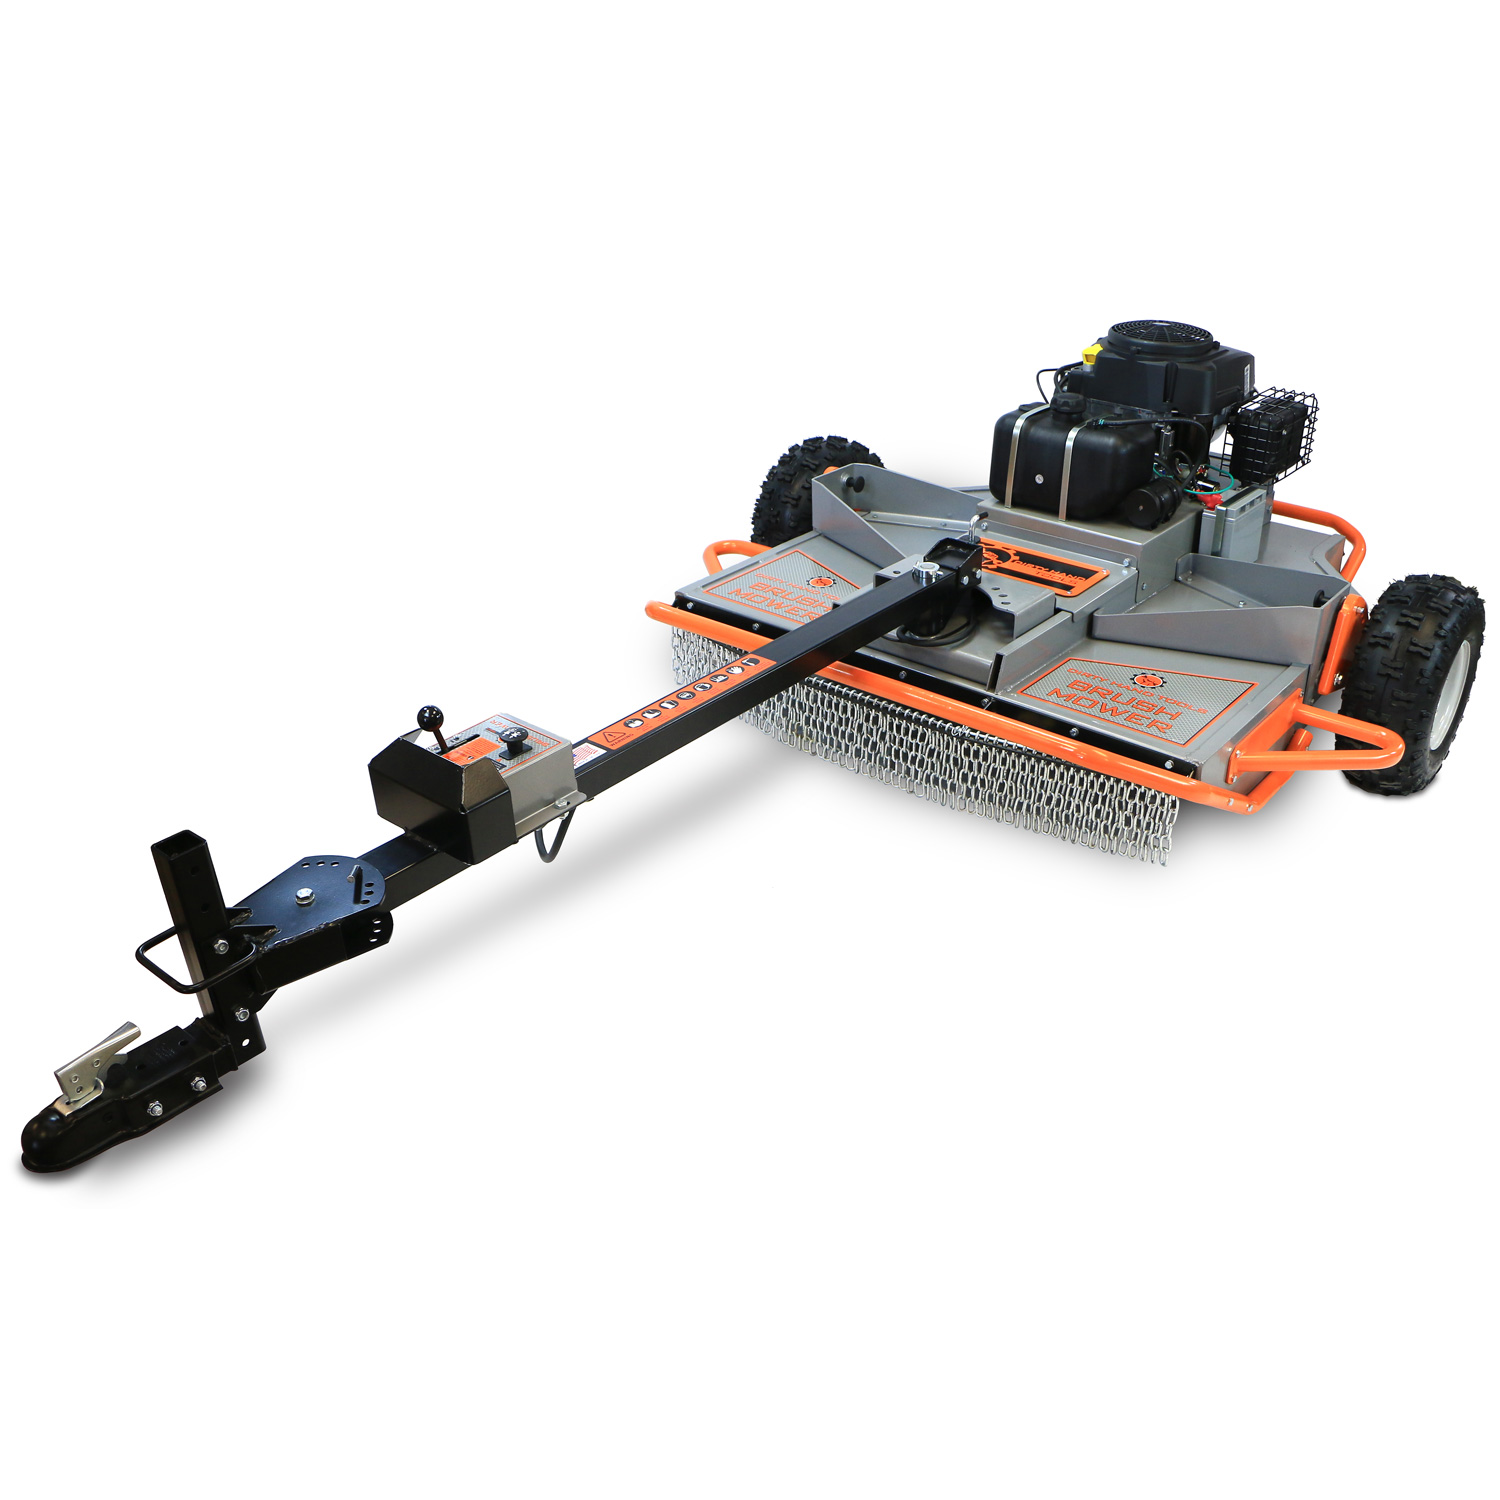 Tow Behind Brush Mower Dirty Hand Tools